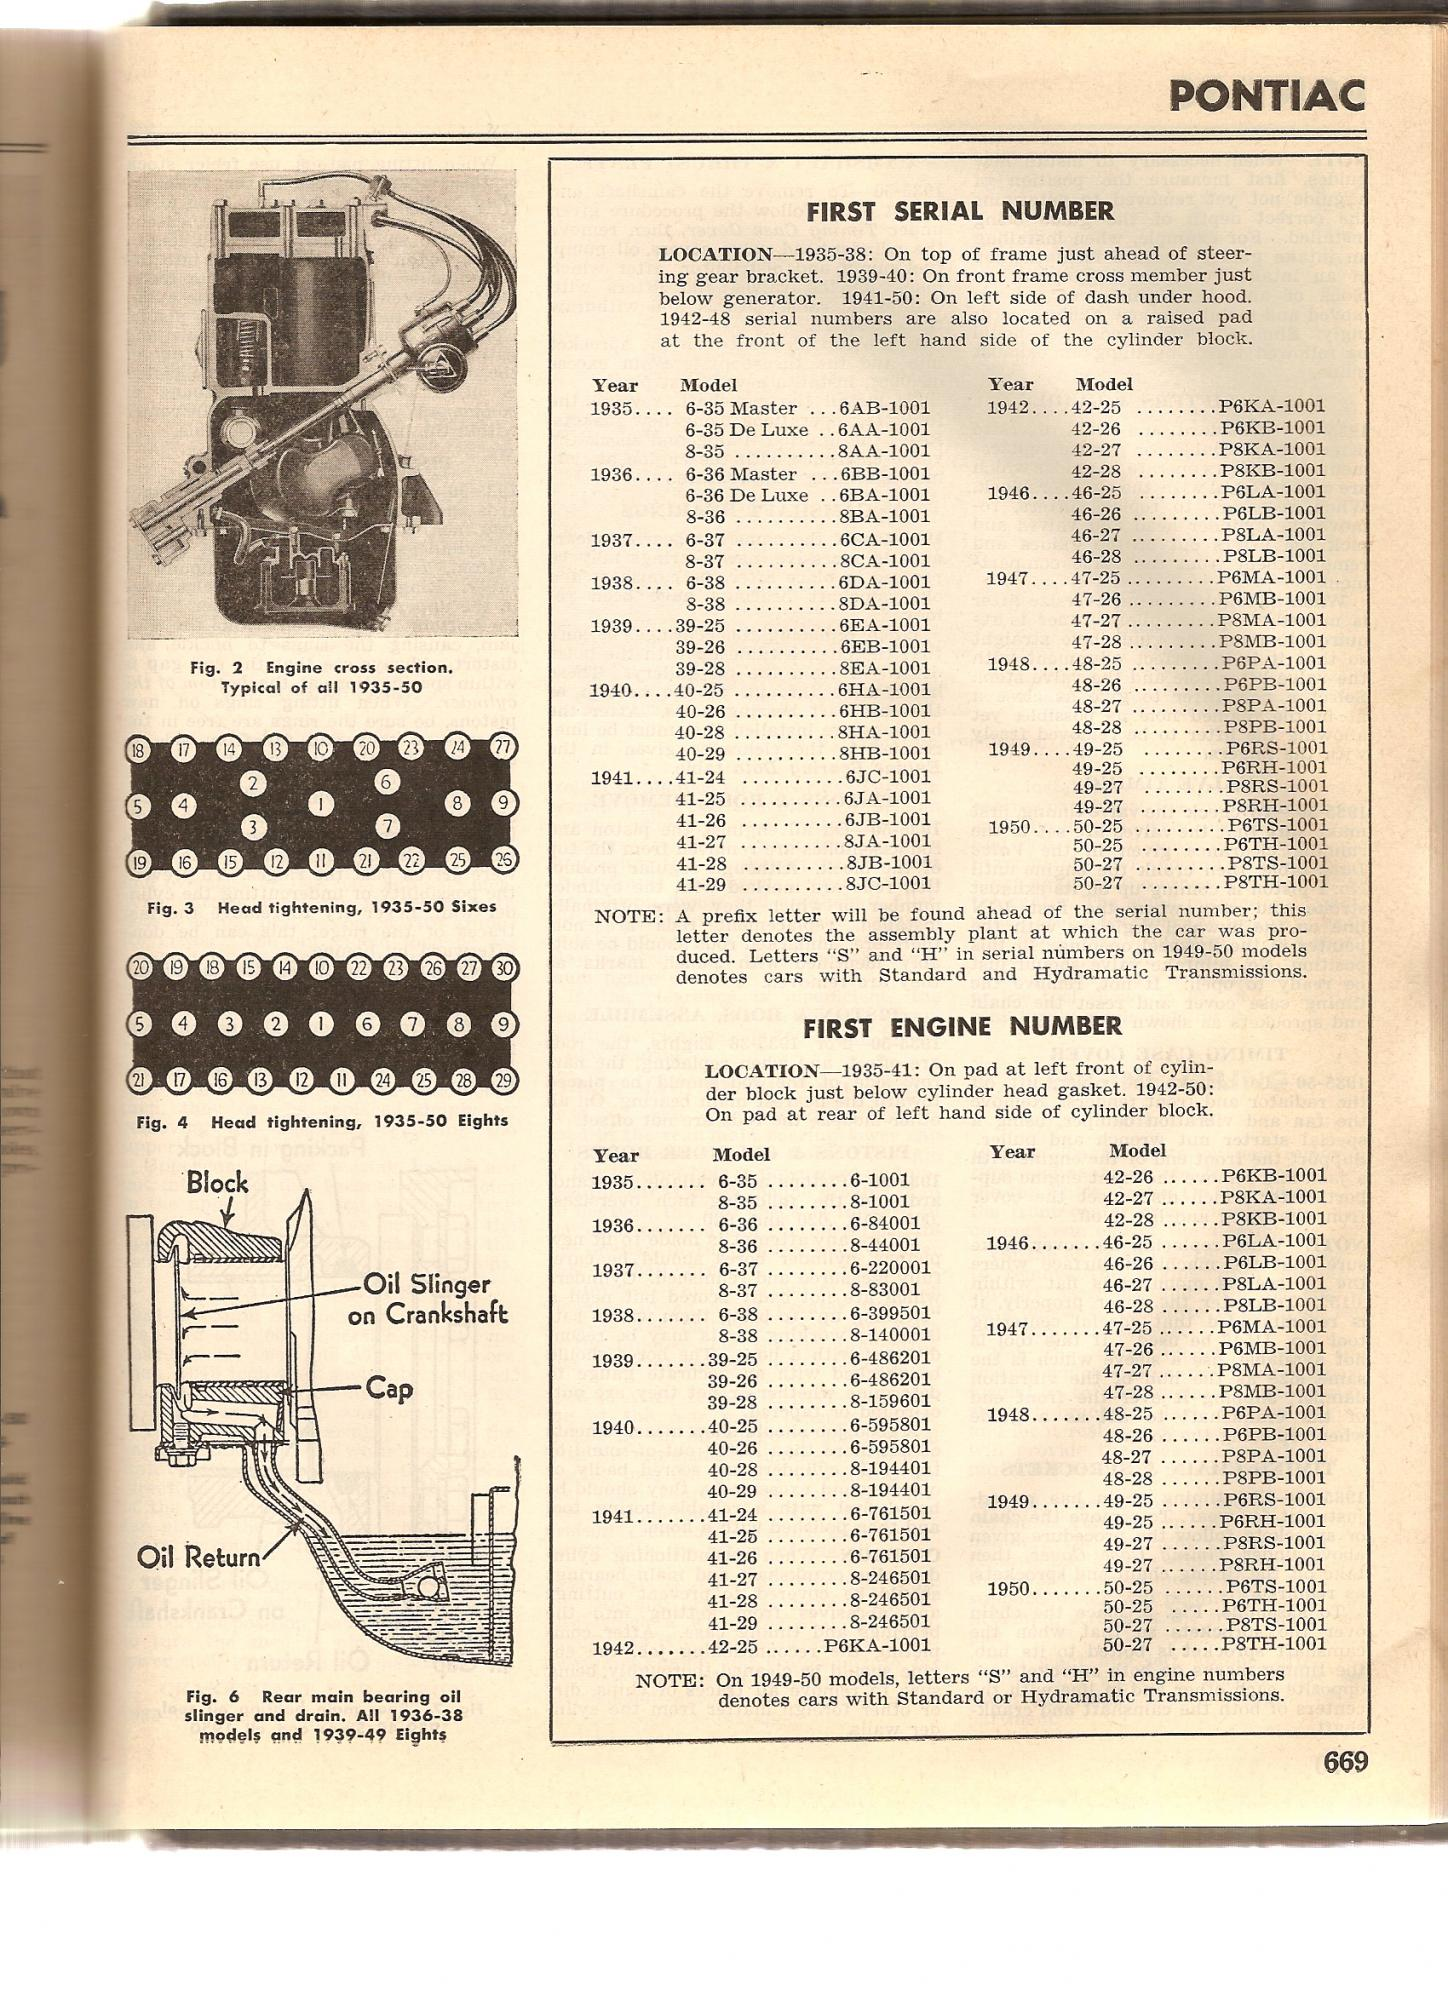 wiring diagram for 1939 buick with 1938 Pontiac Coupe Vin Location on 1940 Desoto Wiring Diagram further 1950 Chevy 3100 Light Wiring Diagram besides 1969 Chevy Chevelle 350 Engine moreover 1940 Desoto Wiring Diagram as well 1930 Chevy Sedan 4 Door For Sale.